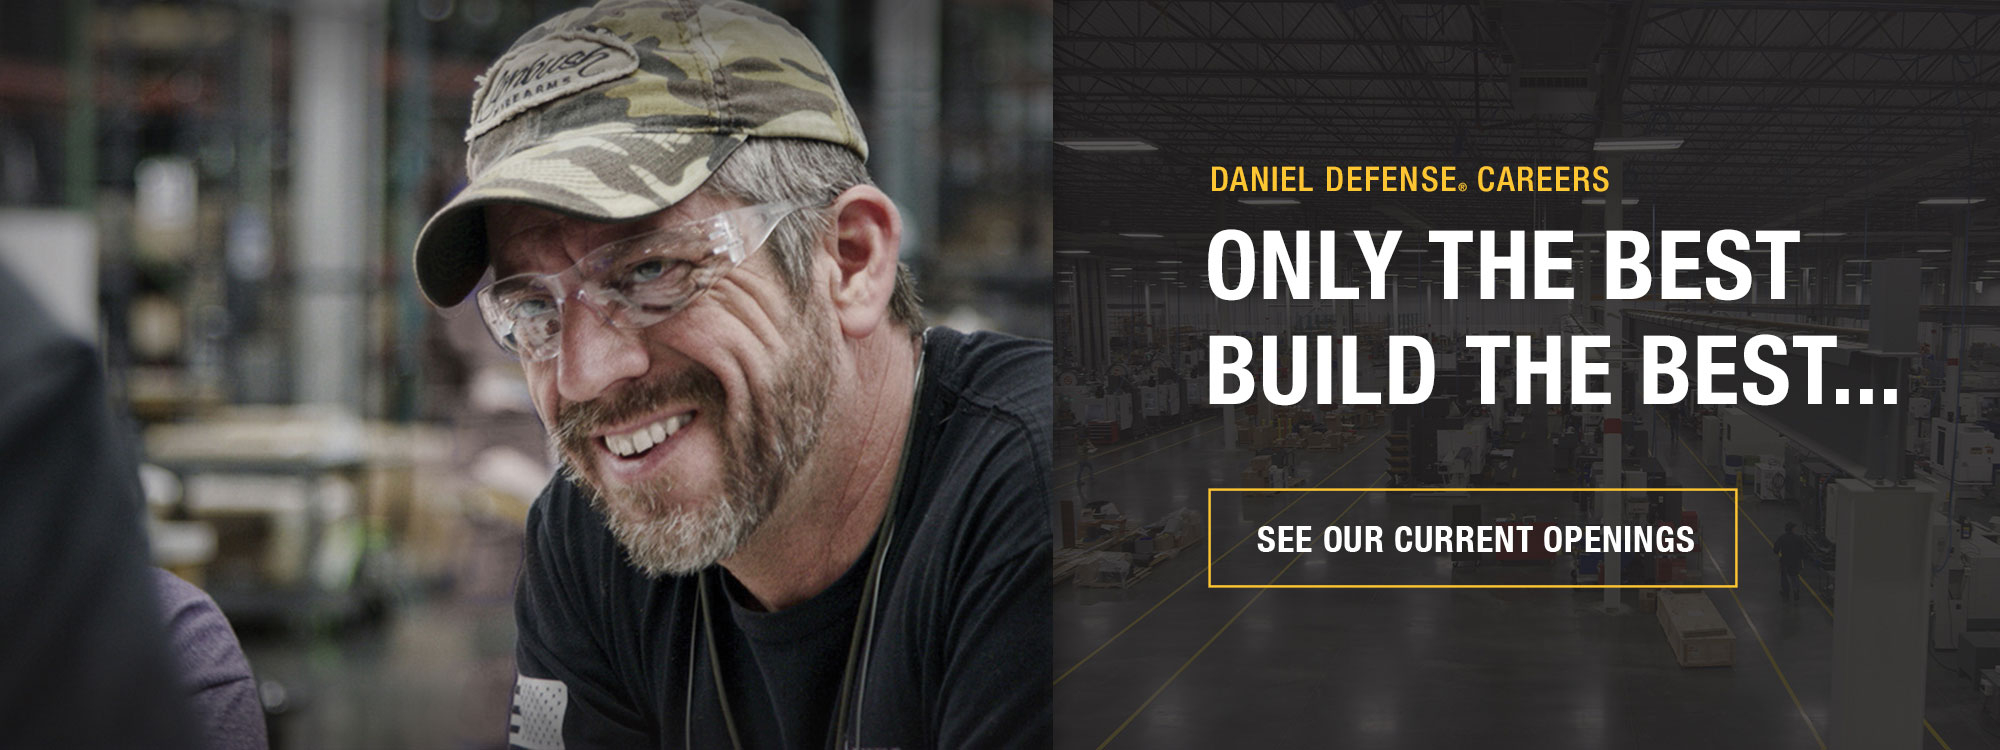 Daniel Defense Careers